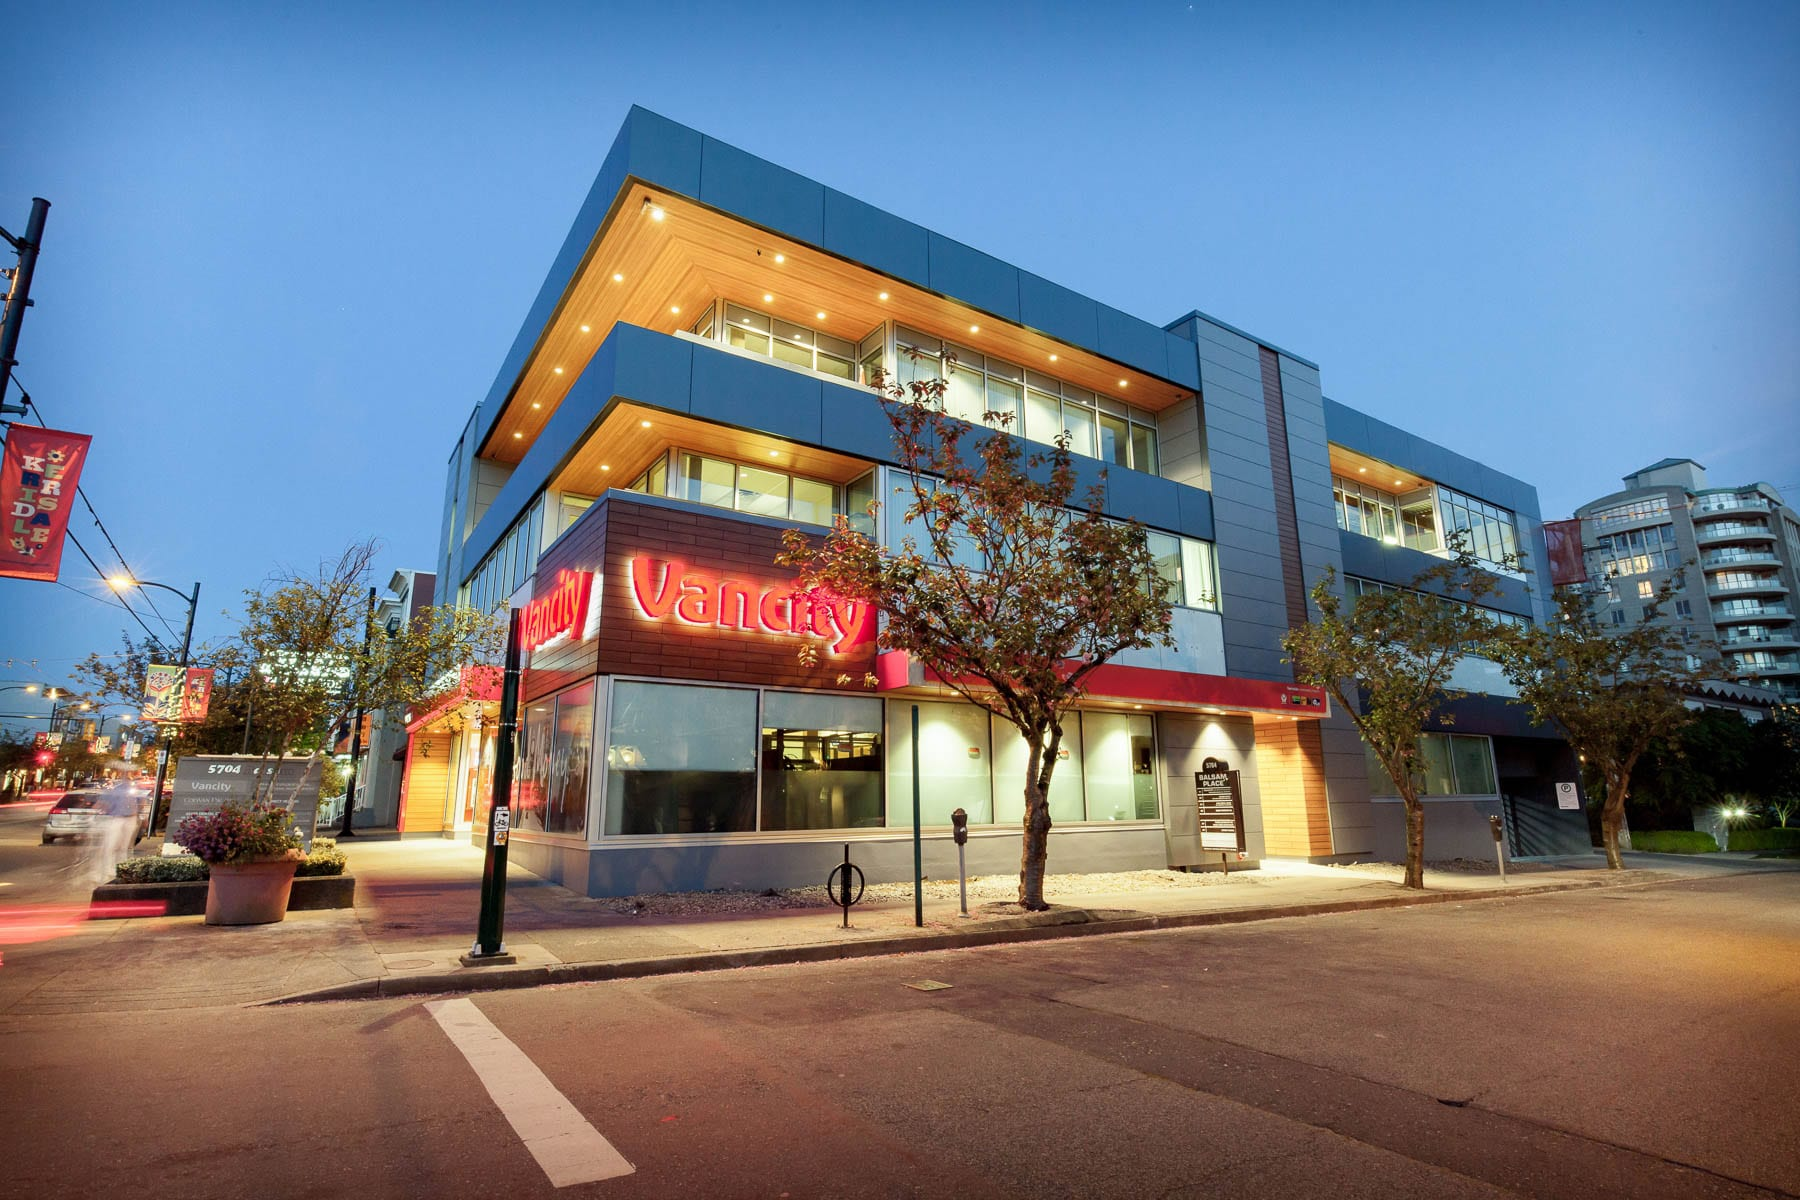 Balsam Street building envelope upgrade including roofing, exterior finishes, glazing and Vancity Bank interior TI